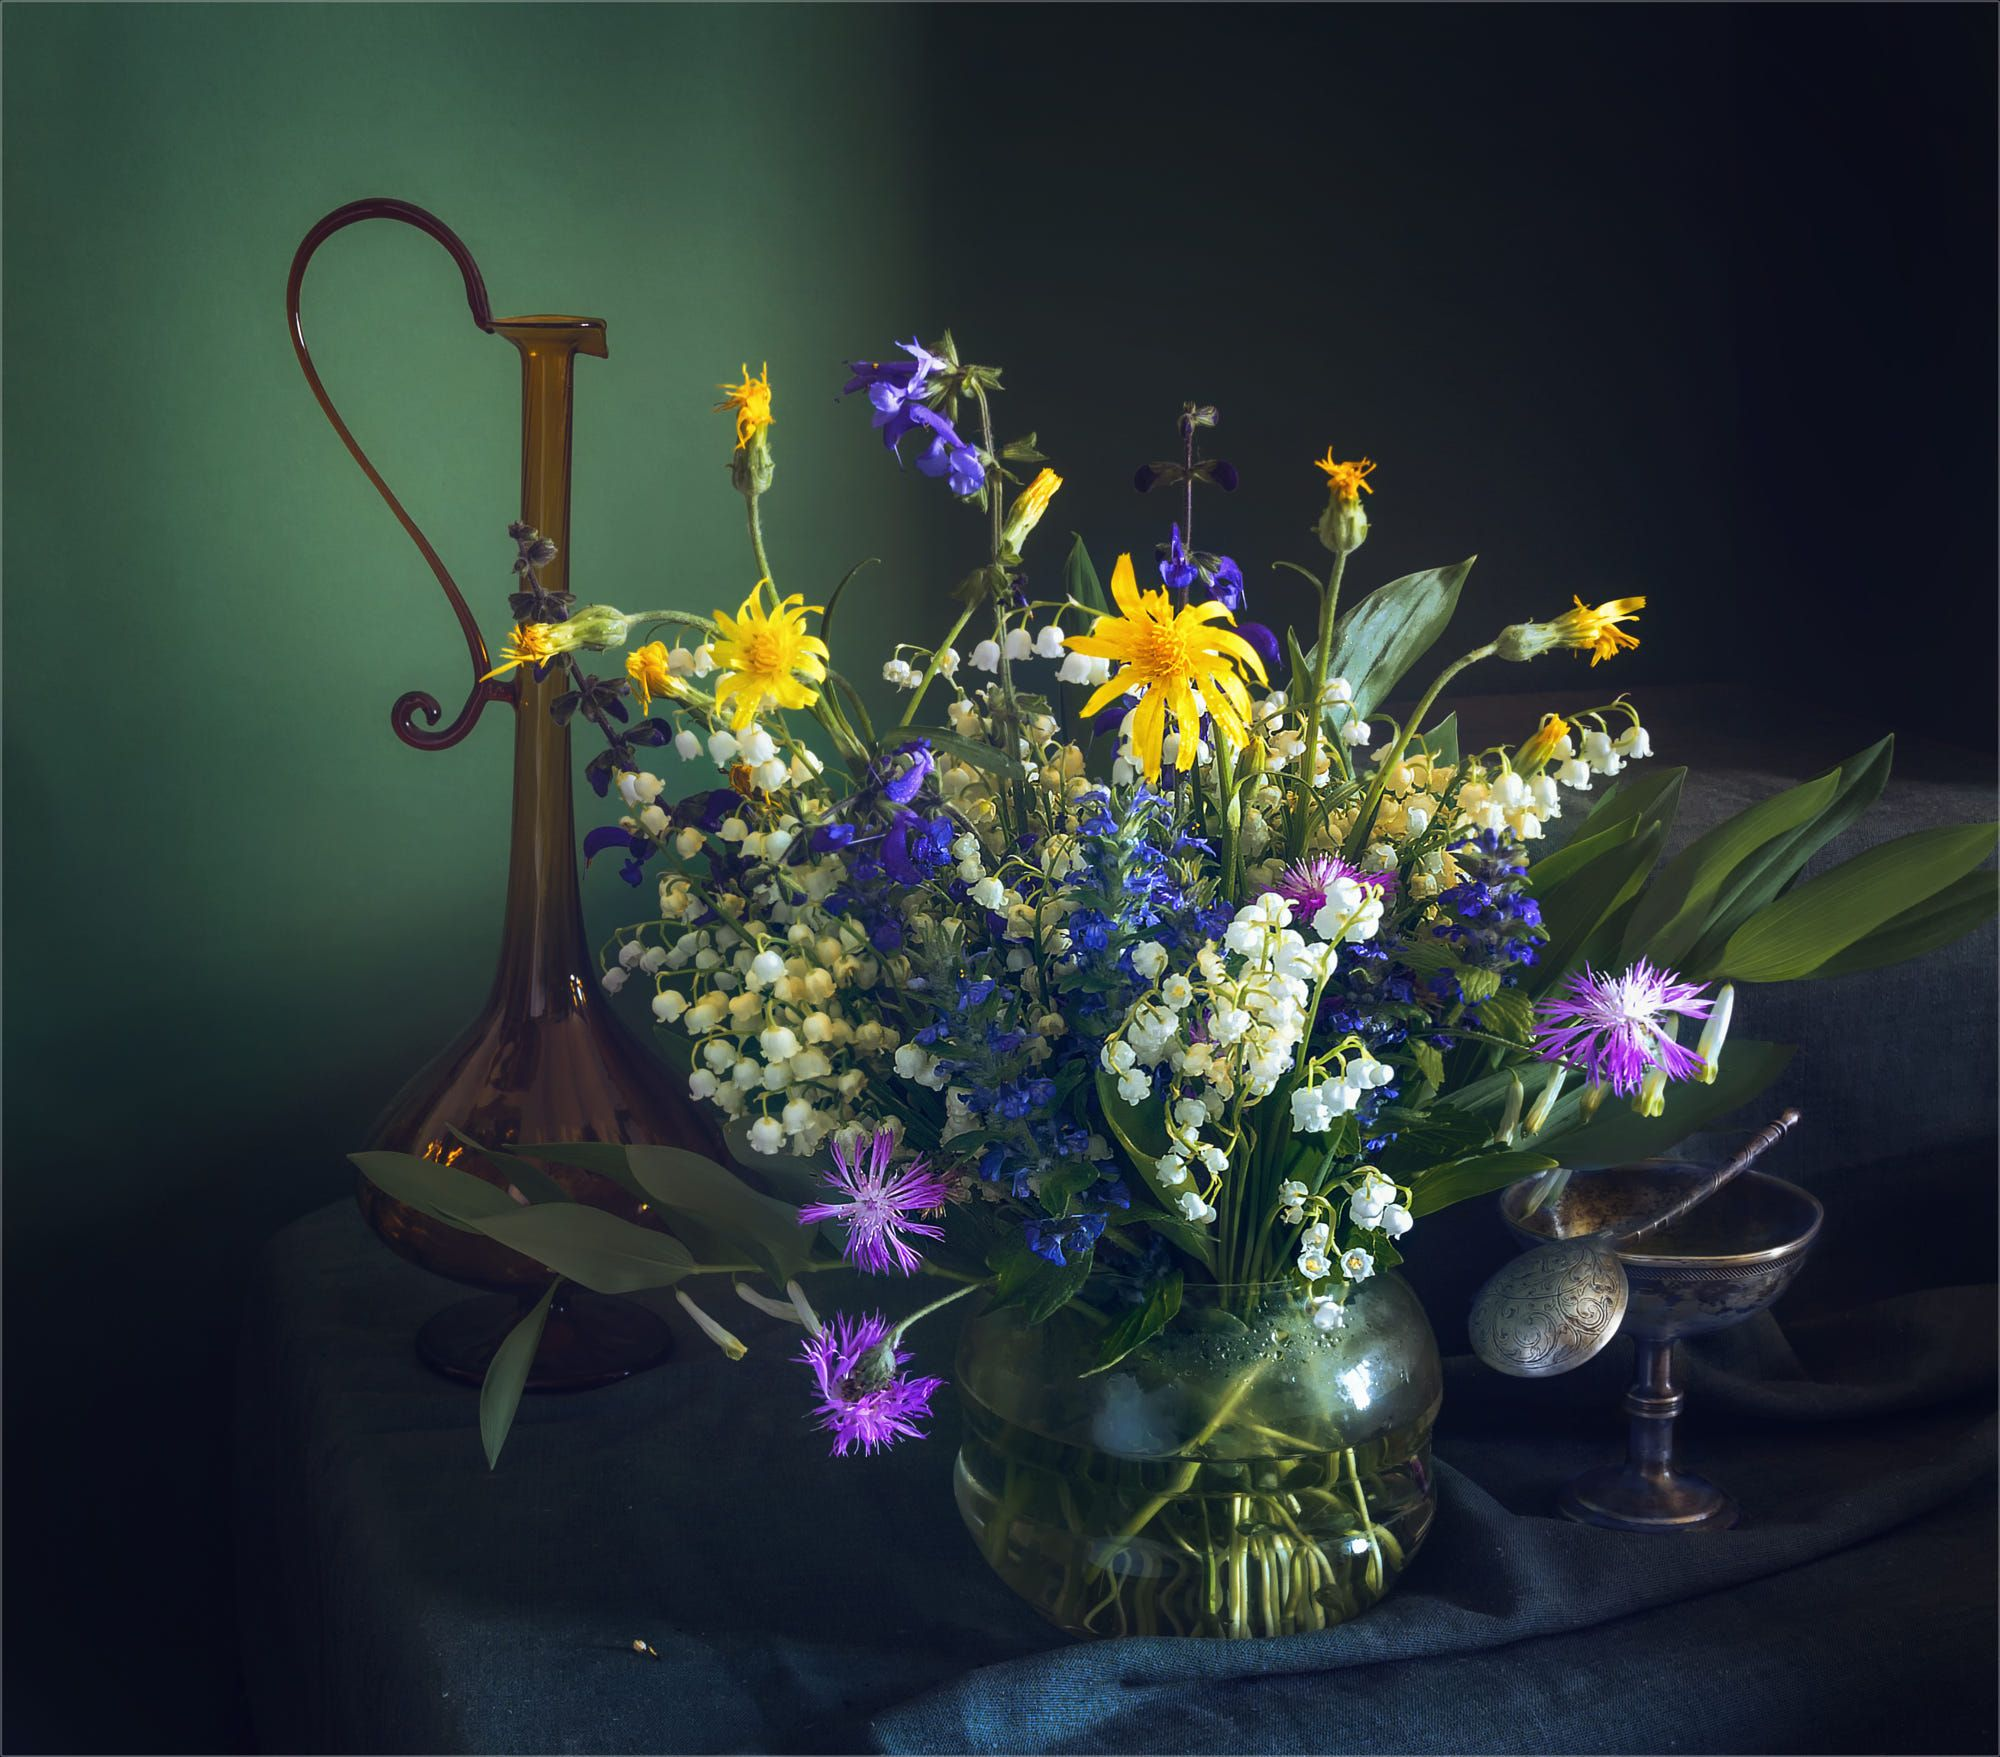 Still Life With A Spring Bouquet By Mykhailo Sherman On